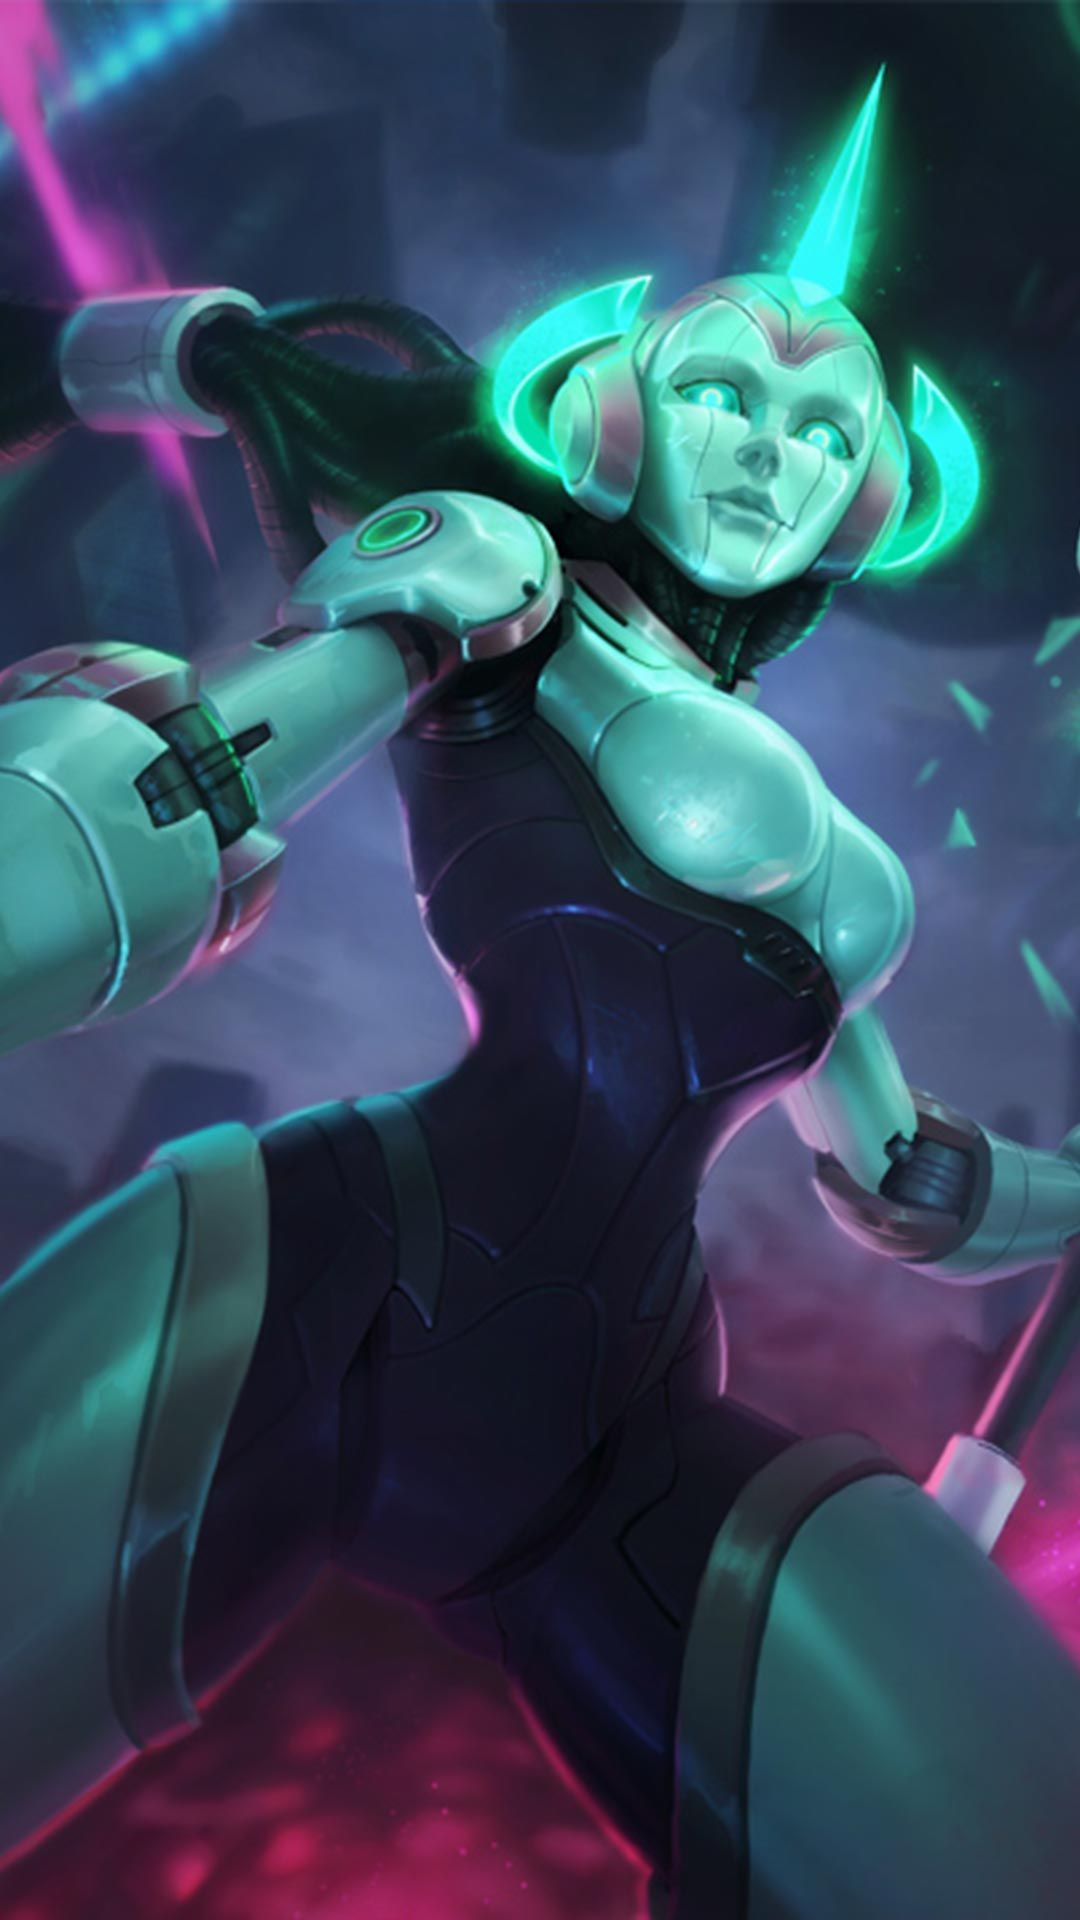 Program Soraka Skin android, iphone wallpaper, mobile